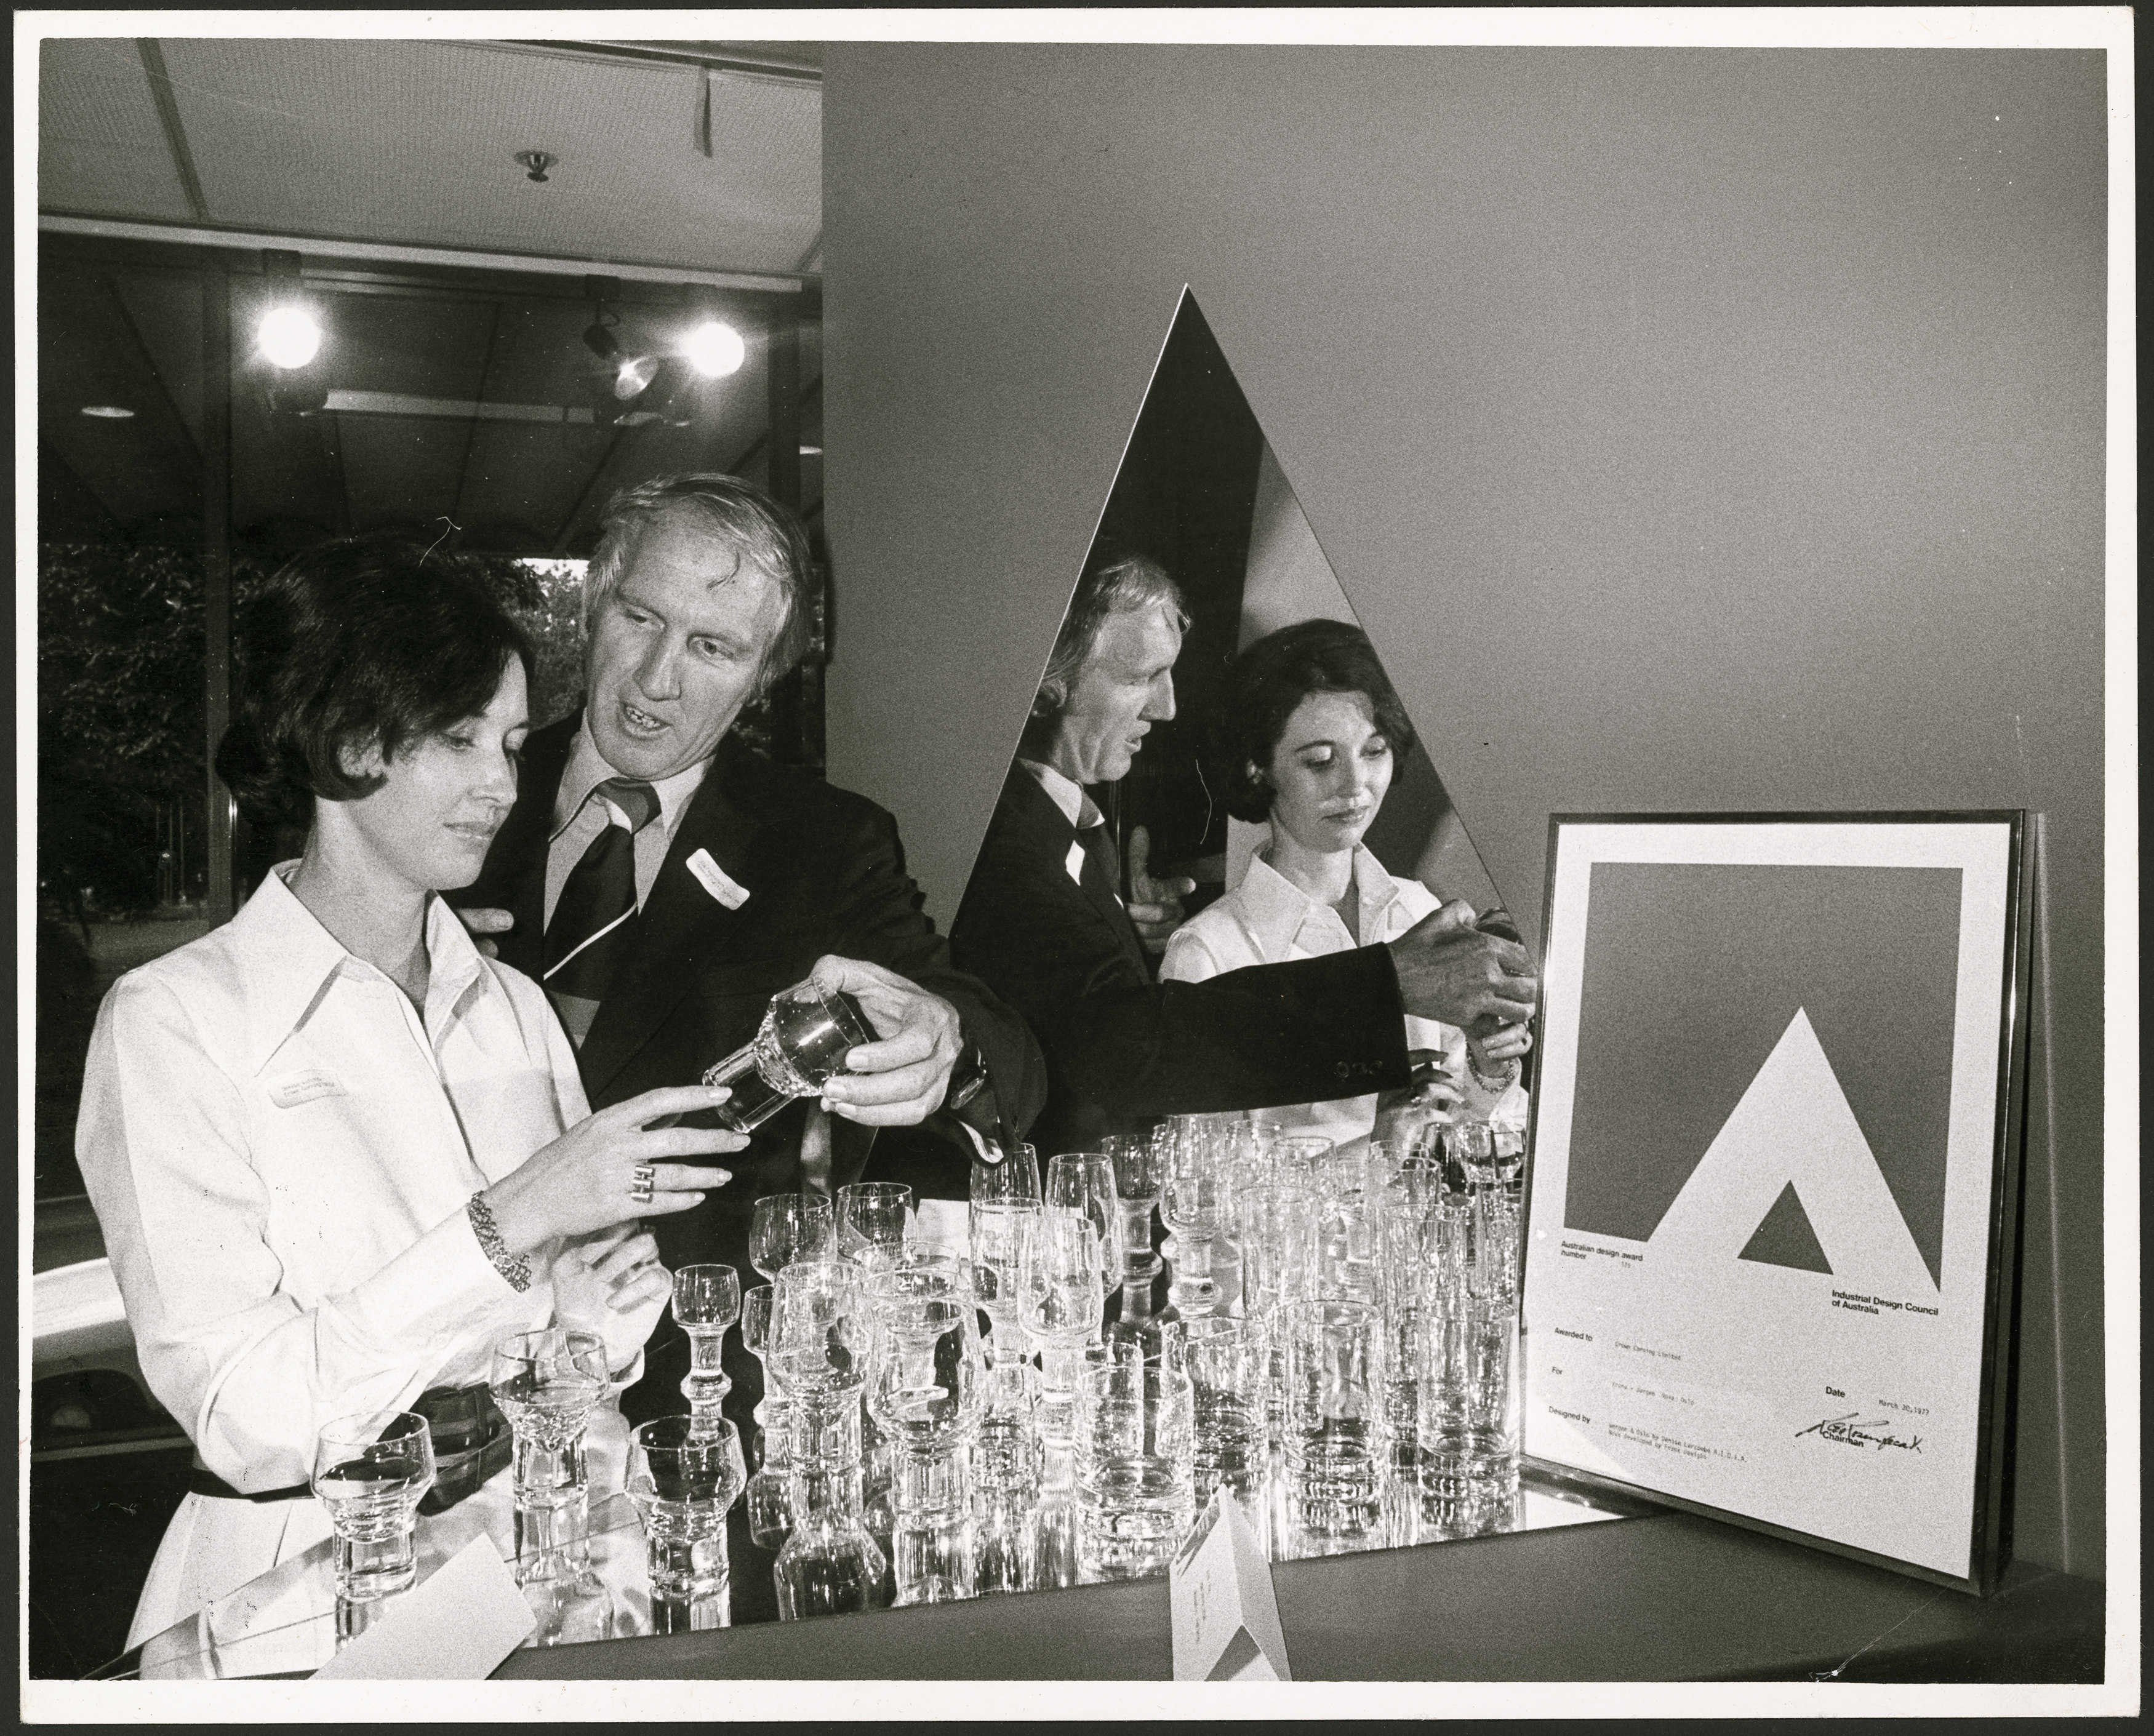 Black and white photograph of a woman and man, both holding a drinking glass. There is a large display of drinking glasses in front of them and a framed award on the right of the image.